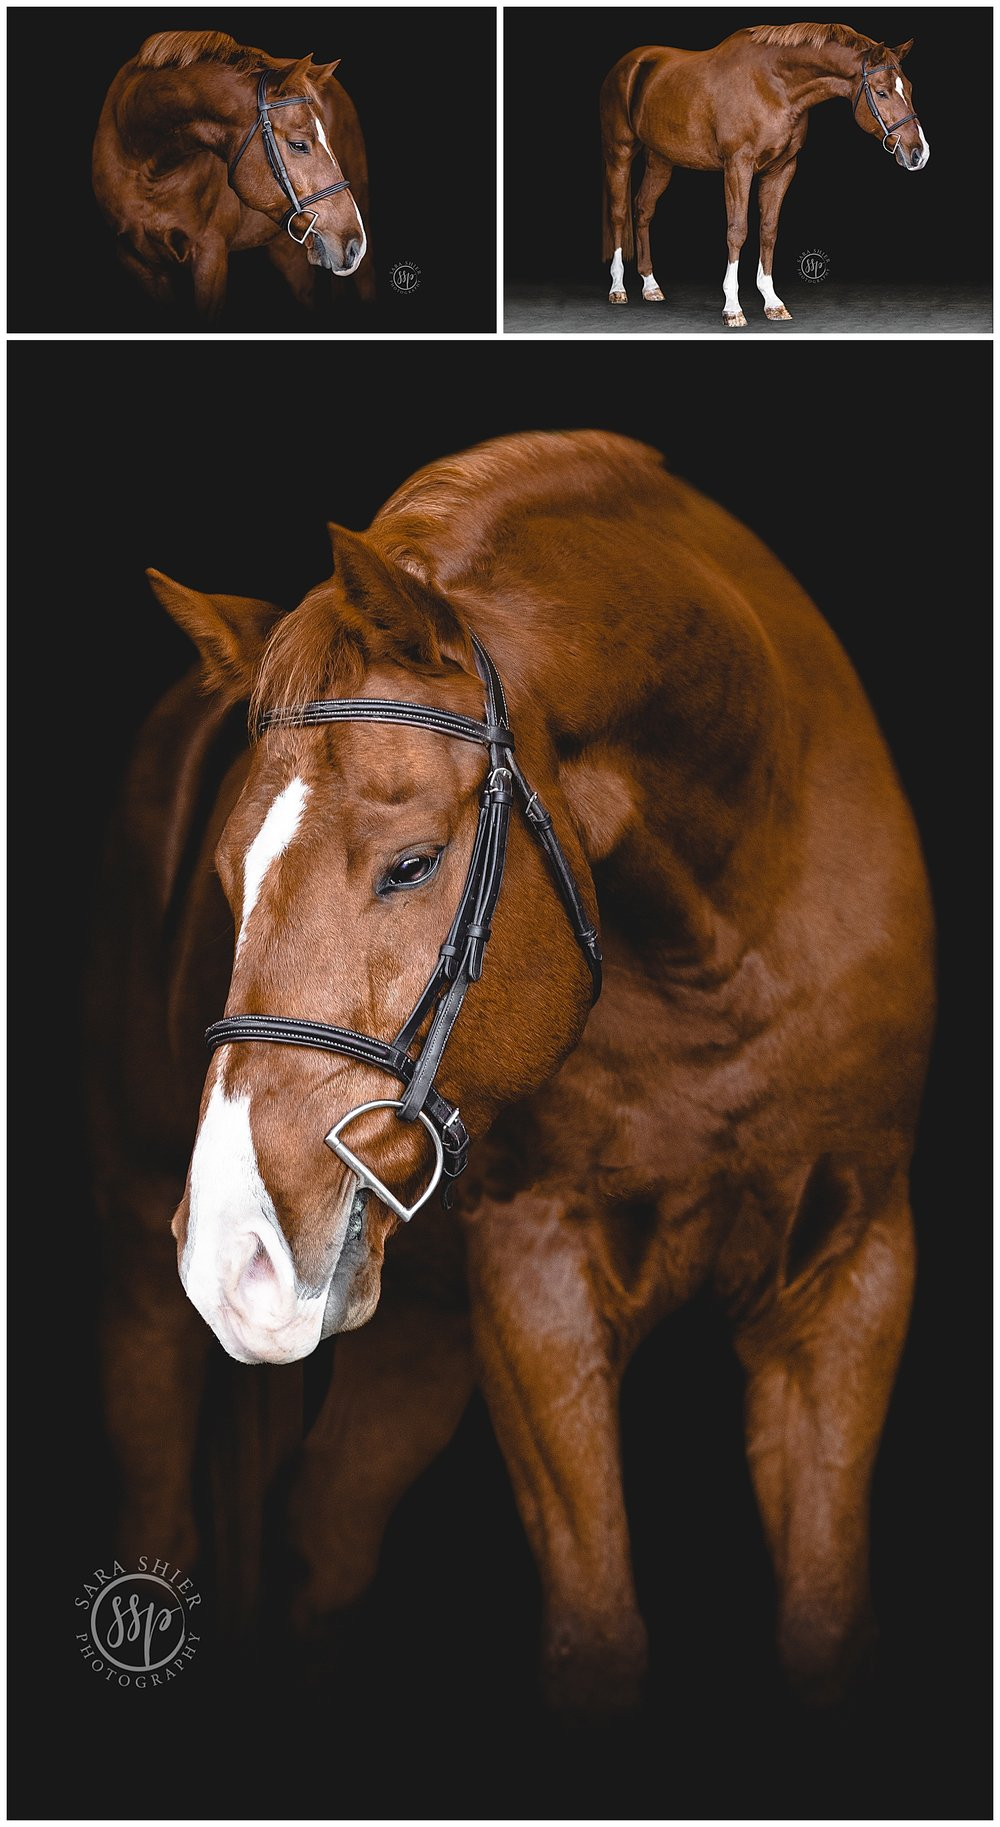 Black Background Horse Rider Equine Photographer Southern California Sara Shier Photography SoCal Equestrian Cowgirl_0219.jpg